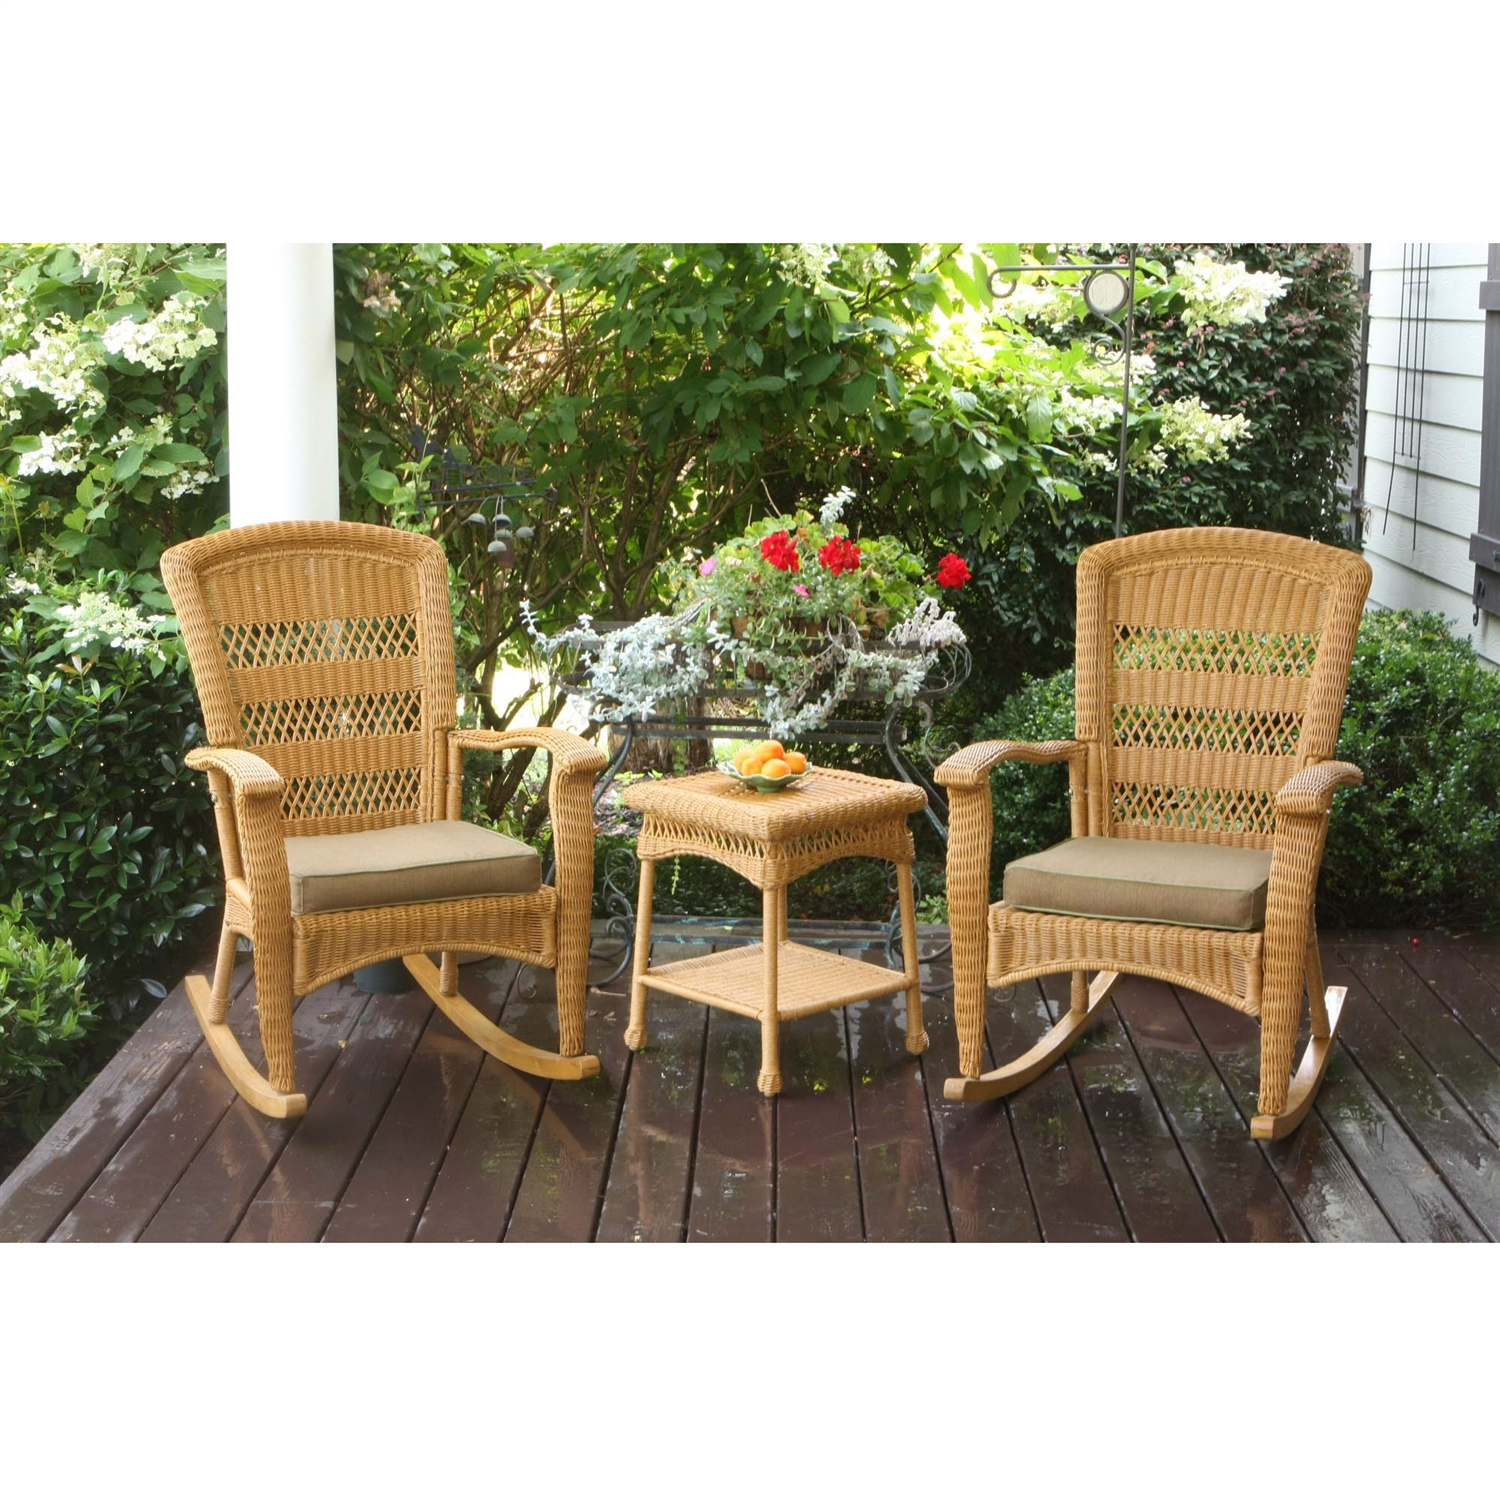 Outdoor Rocking Chair Set 3 Piece Outdoor Porch Rocker Set W 2 Amber Wicker Resin Rocking Chairs Table